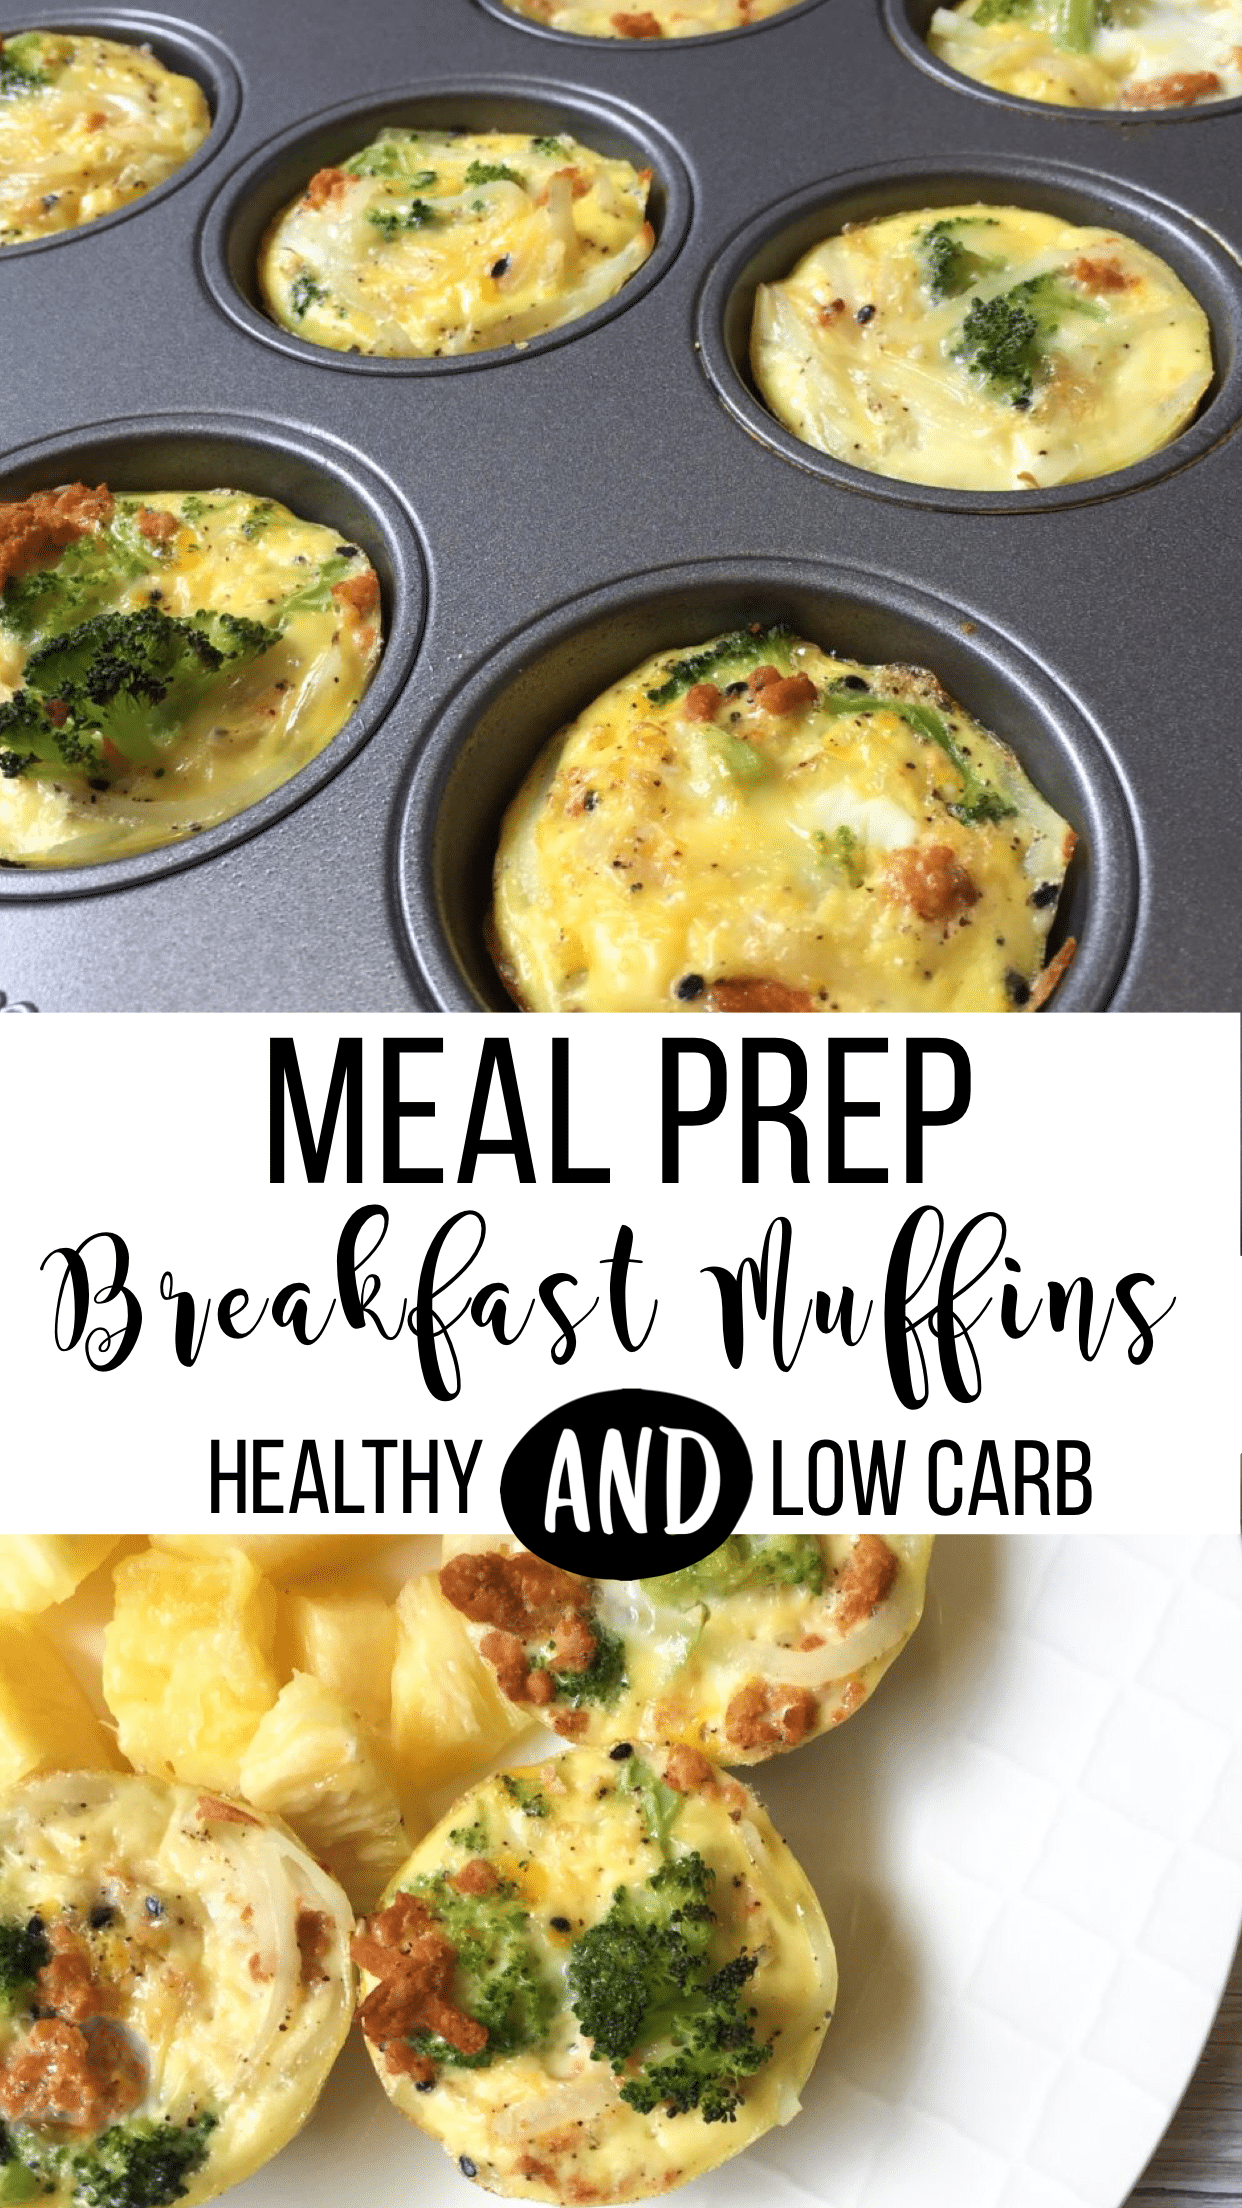 Meal Prep Breakfast Muffins: Quick & Easy - Beauty and the Bench Press -   19 meal prep recipes healthy breakfast ideas